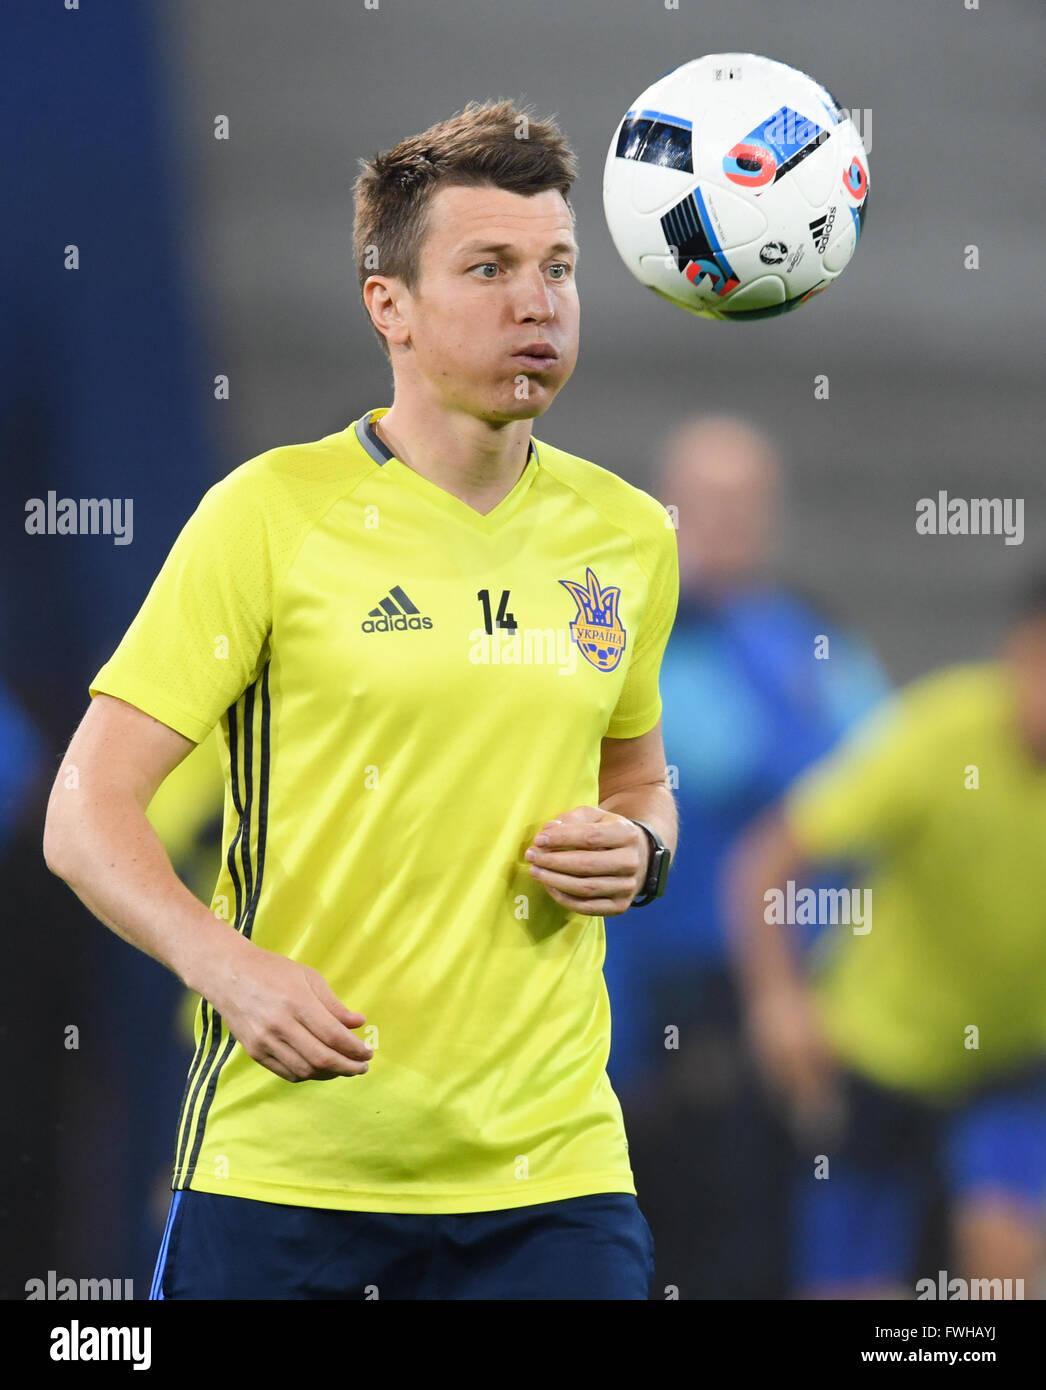 810221df8902 Ruslan Rotan of Ukraine during a training session at Stade Pierre Mauroy in  Lille, France